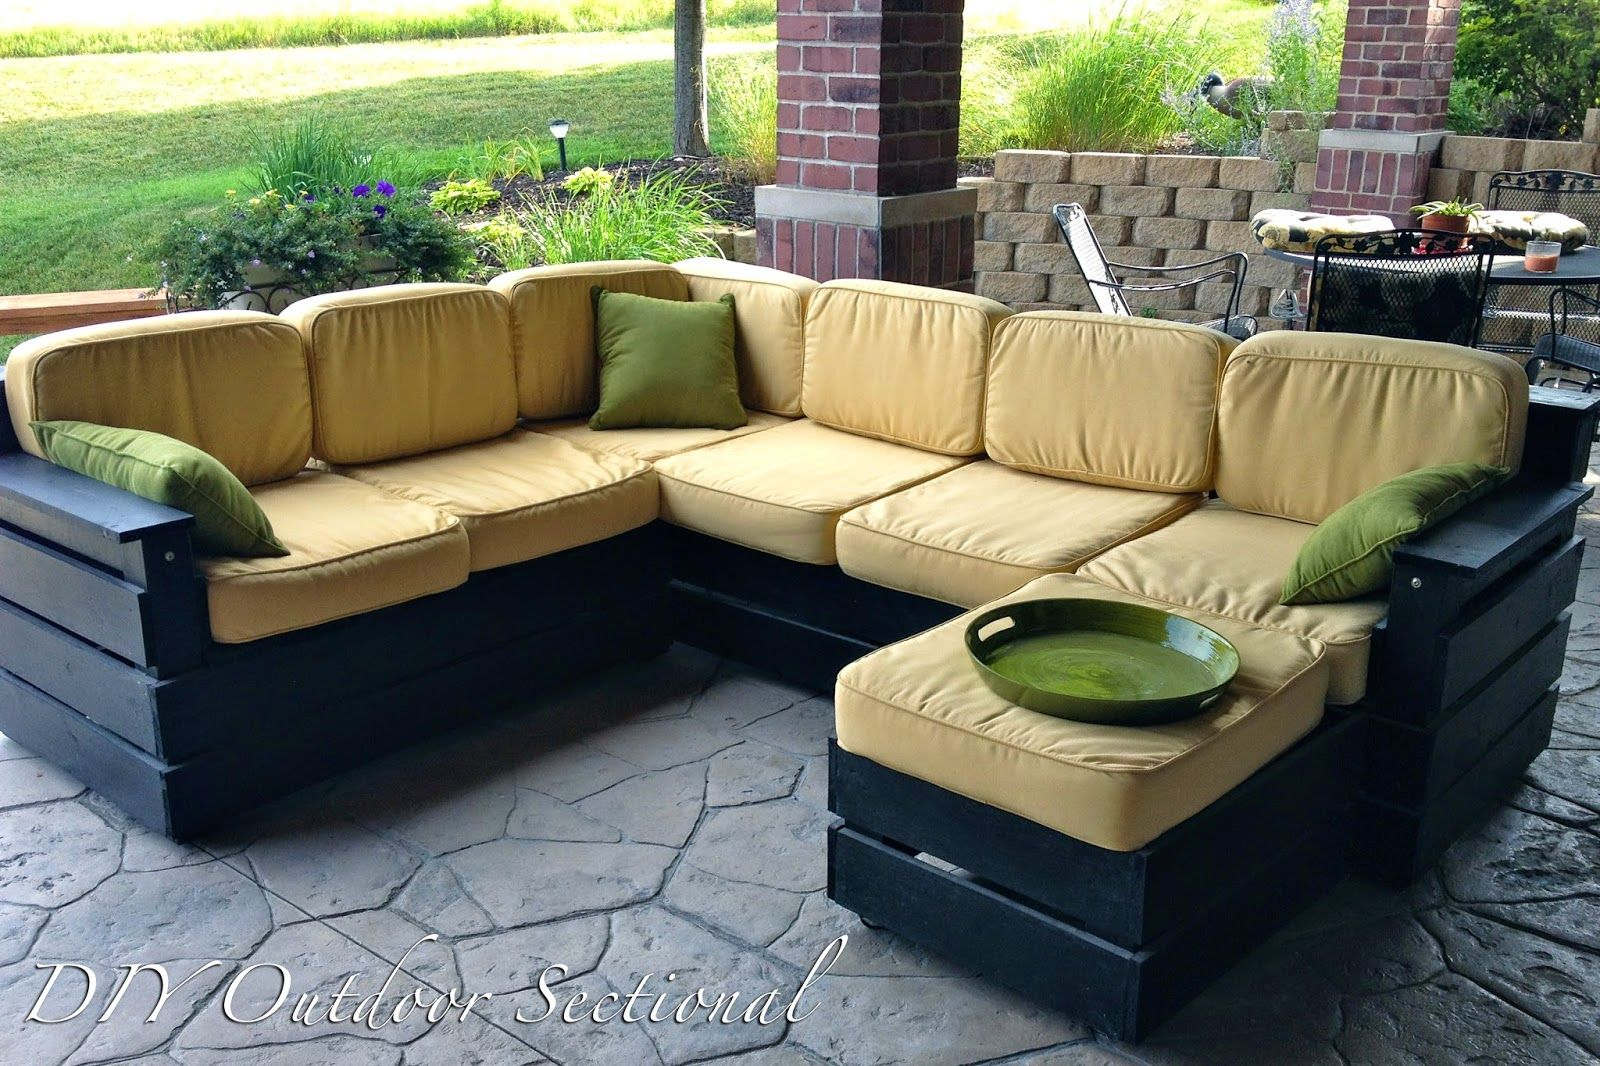 DIY Outdoor Sectional. Build it yourself out of regular ...